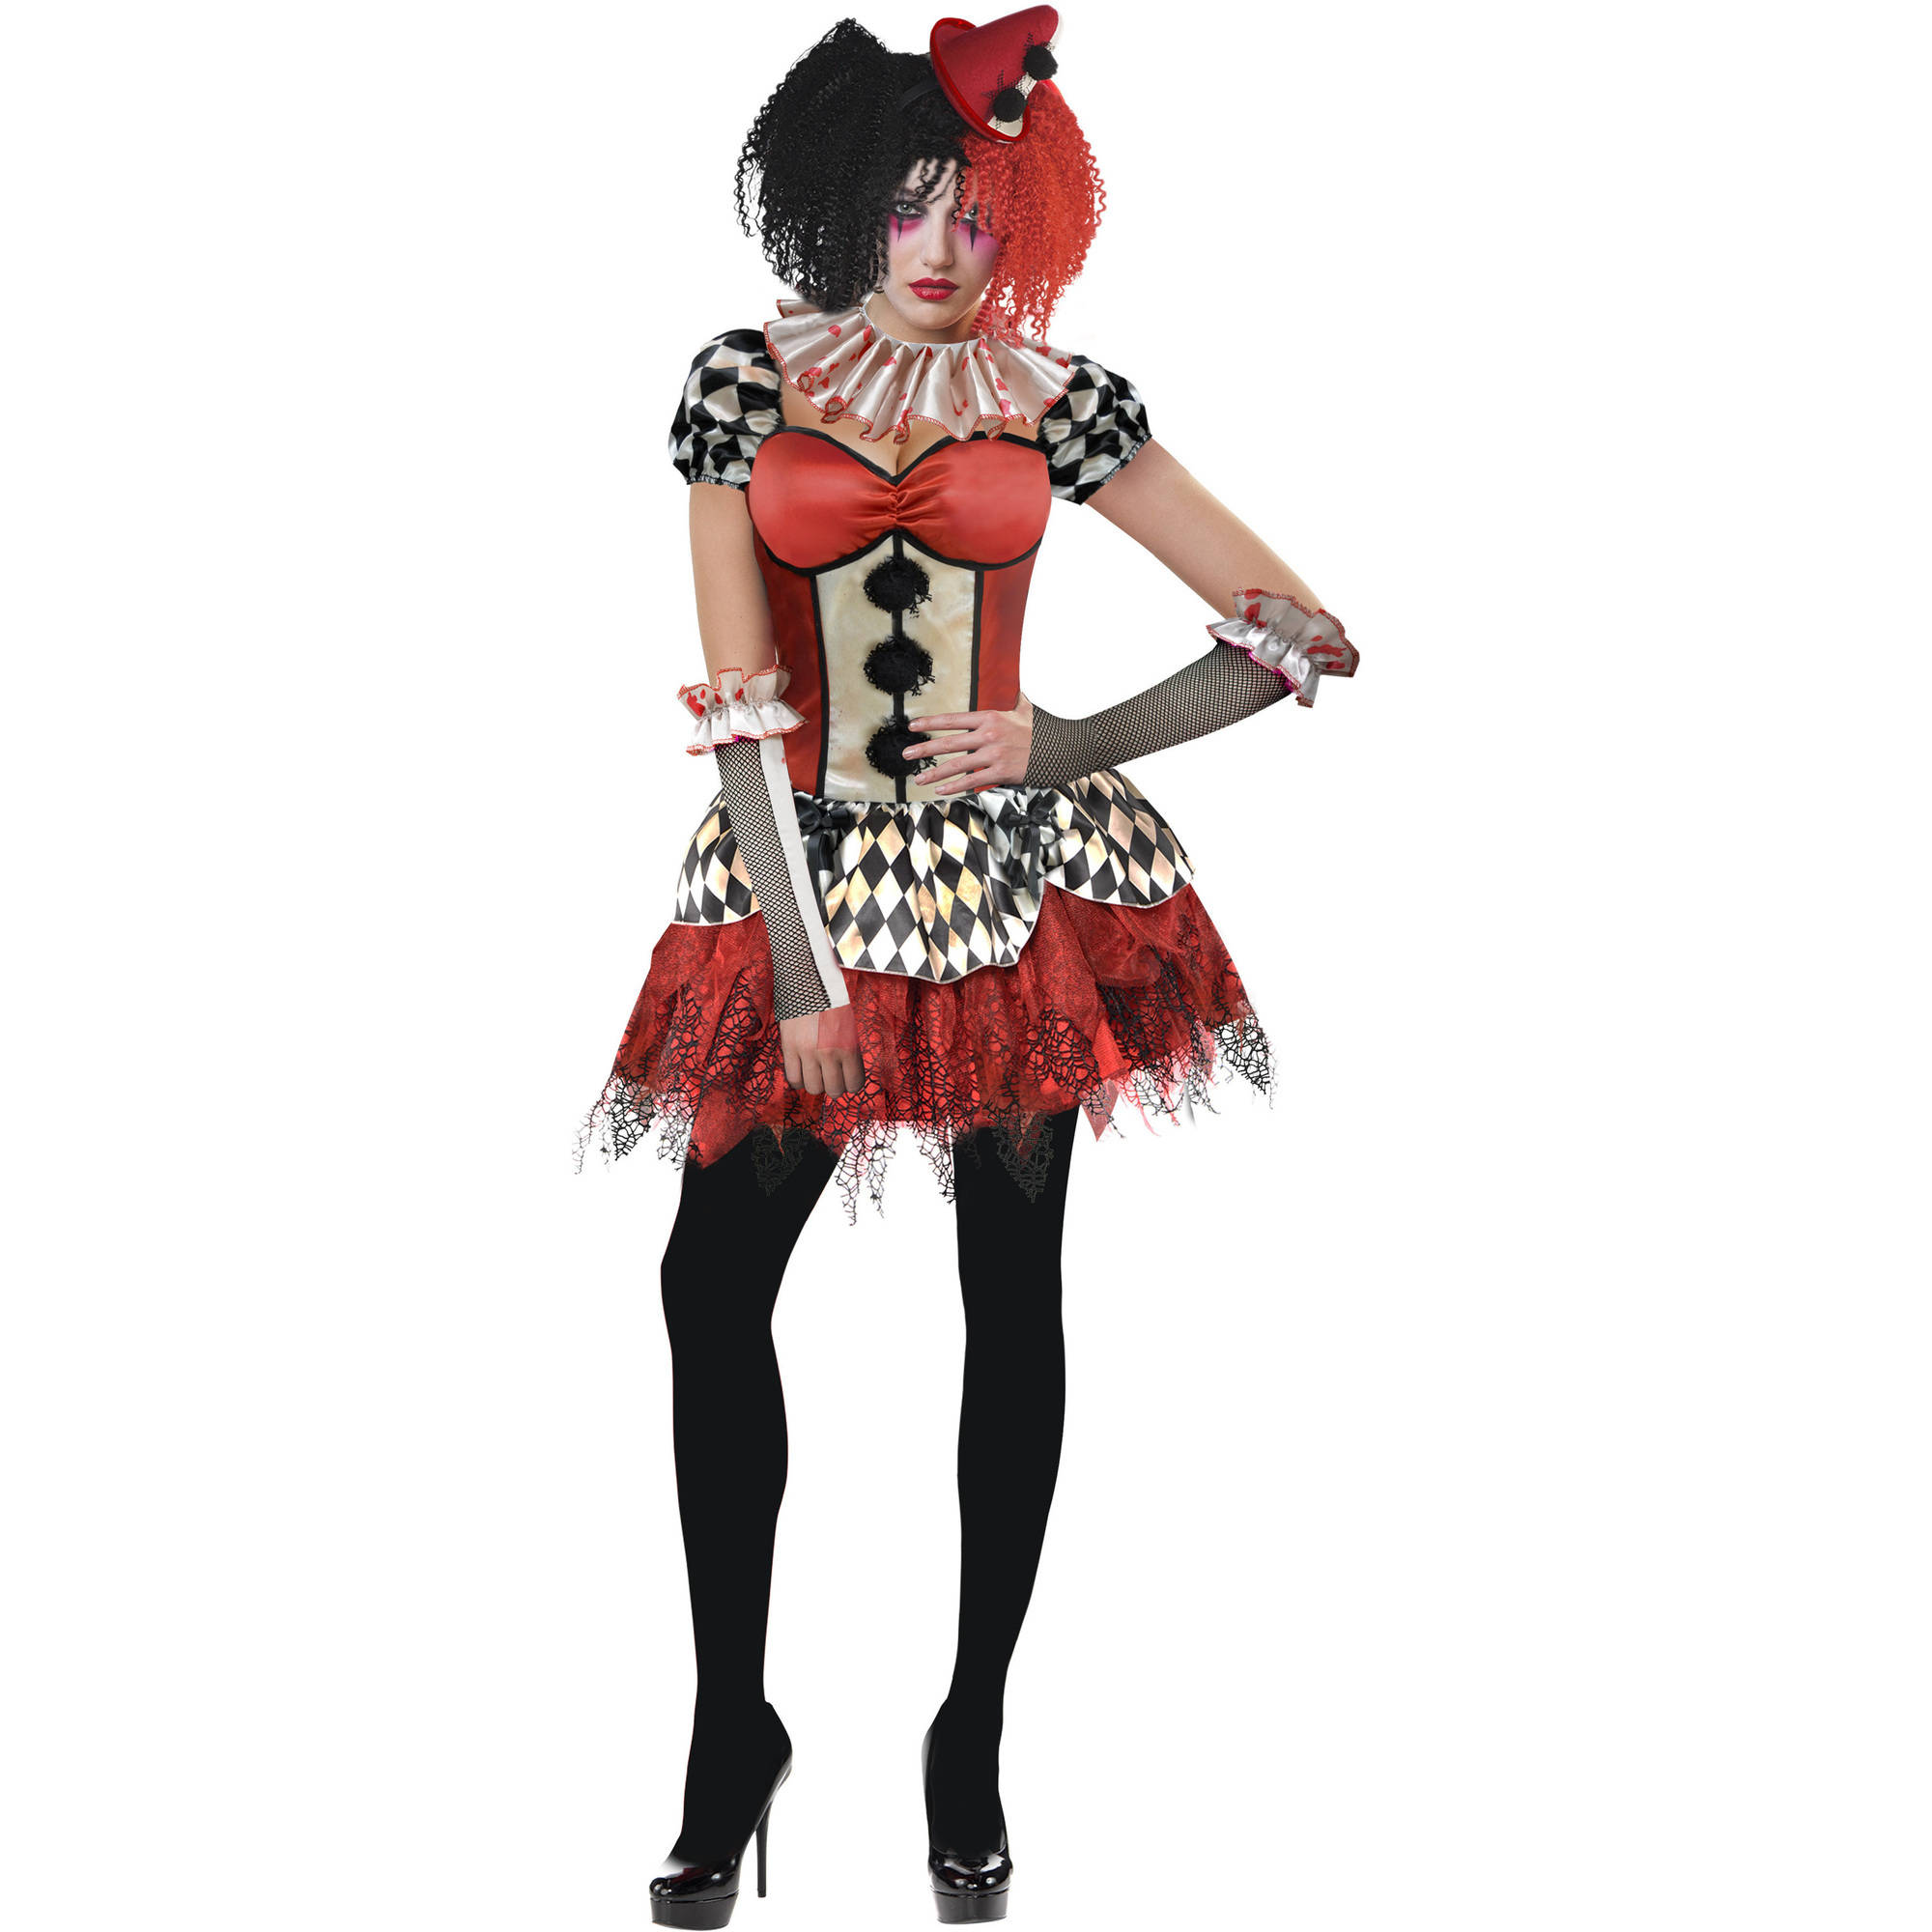 Freakshow Clown Adult Halloween Costume